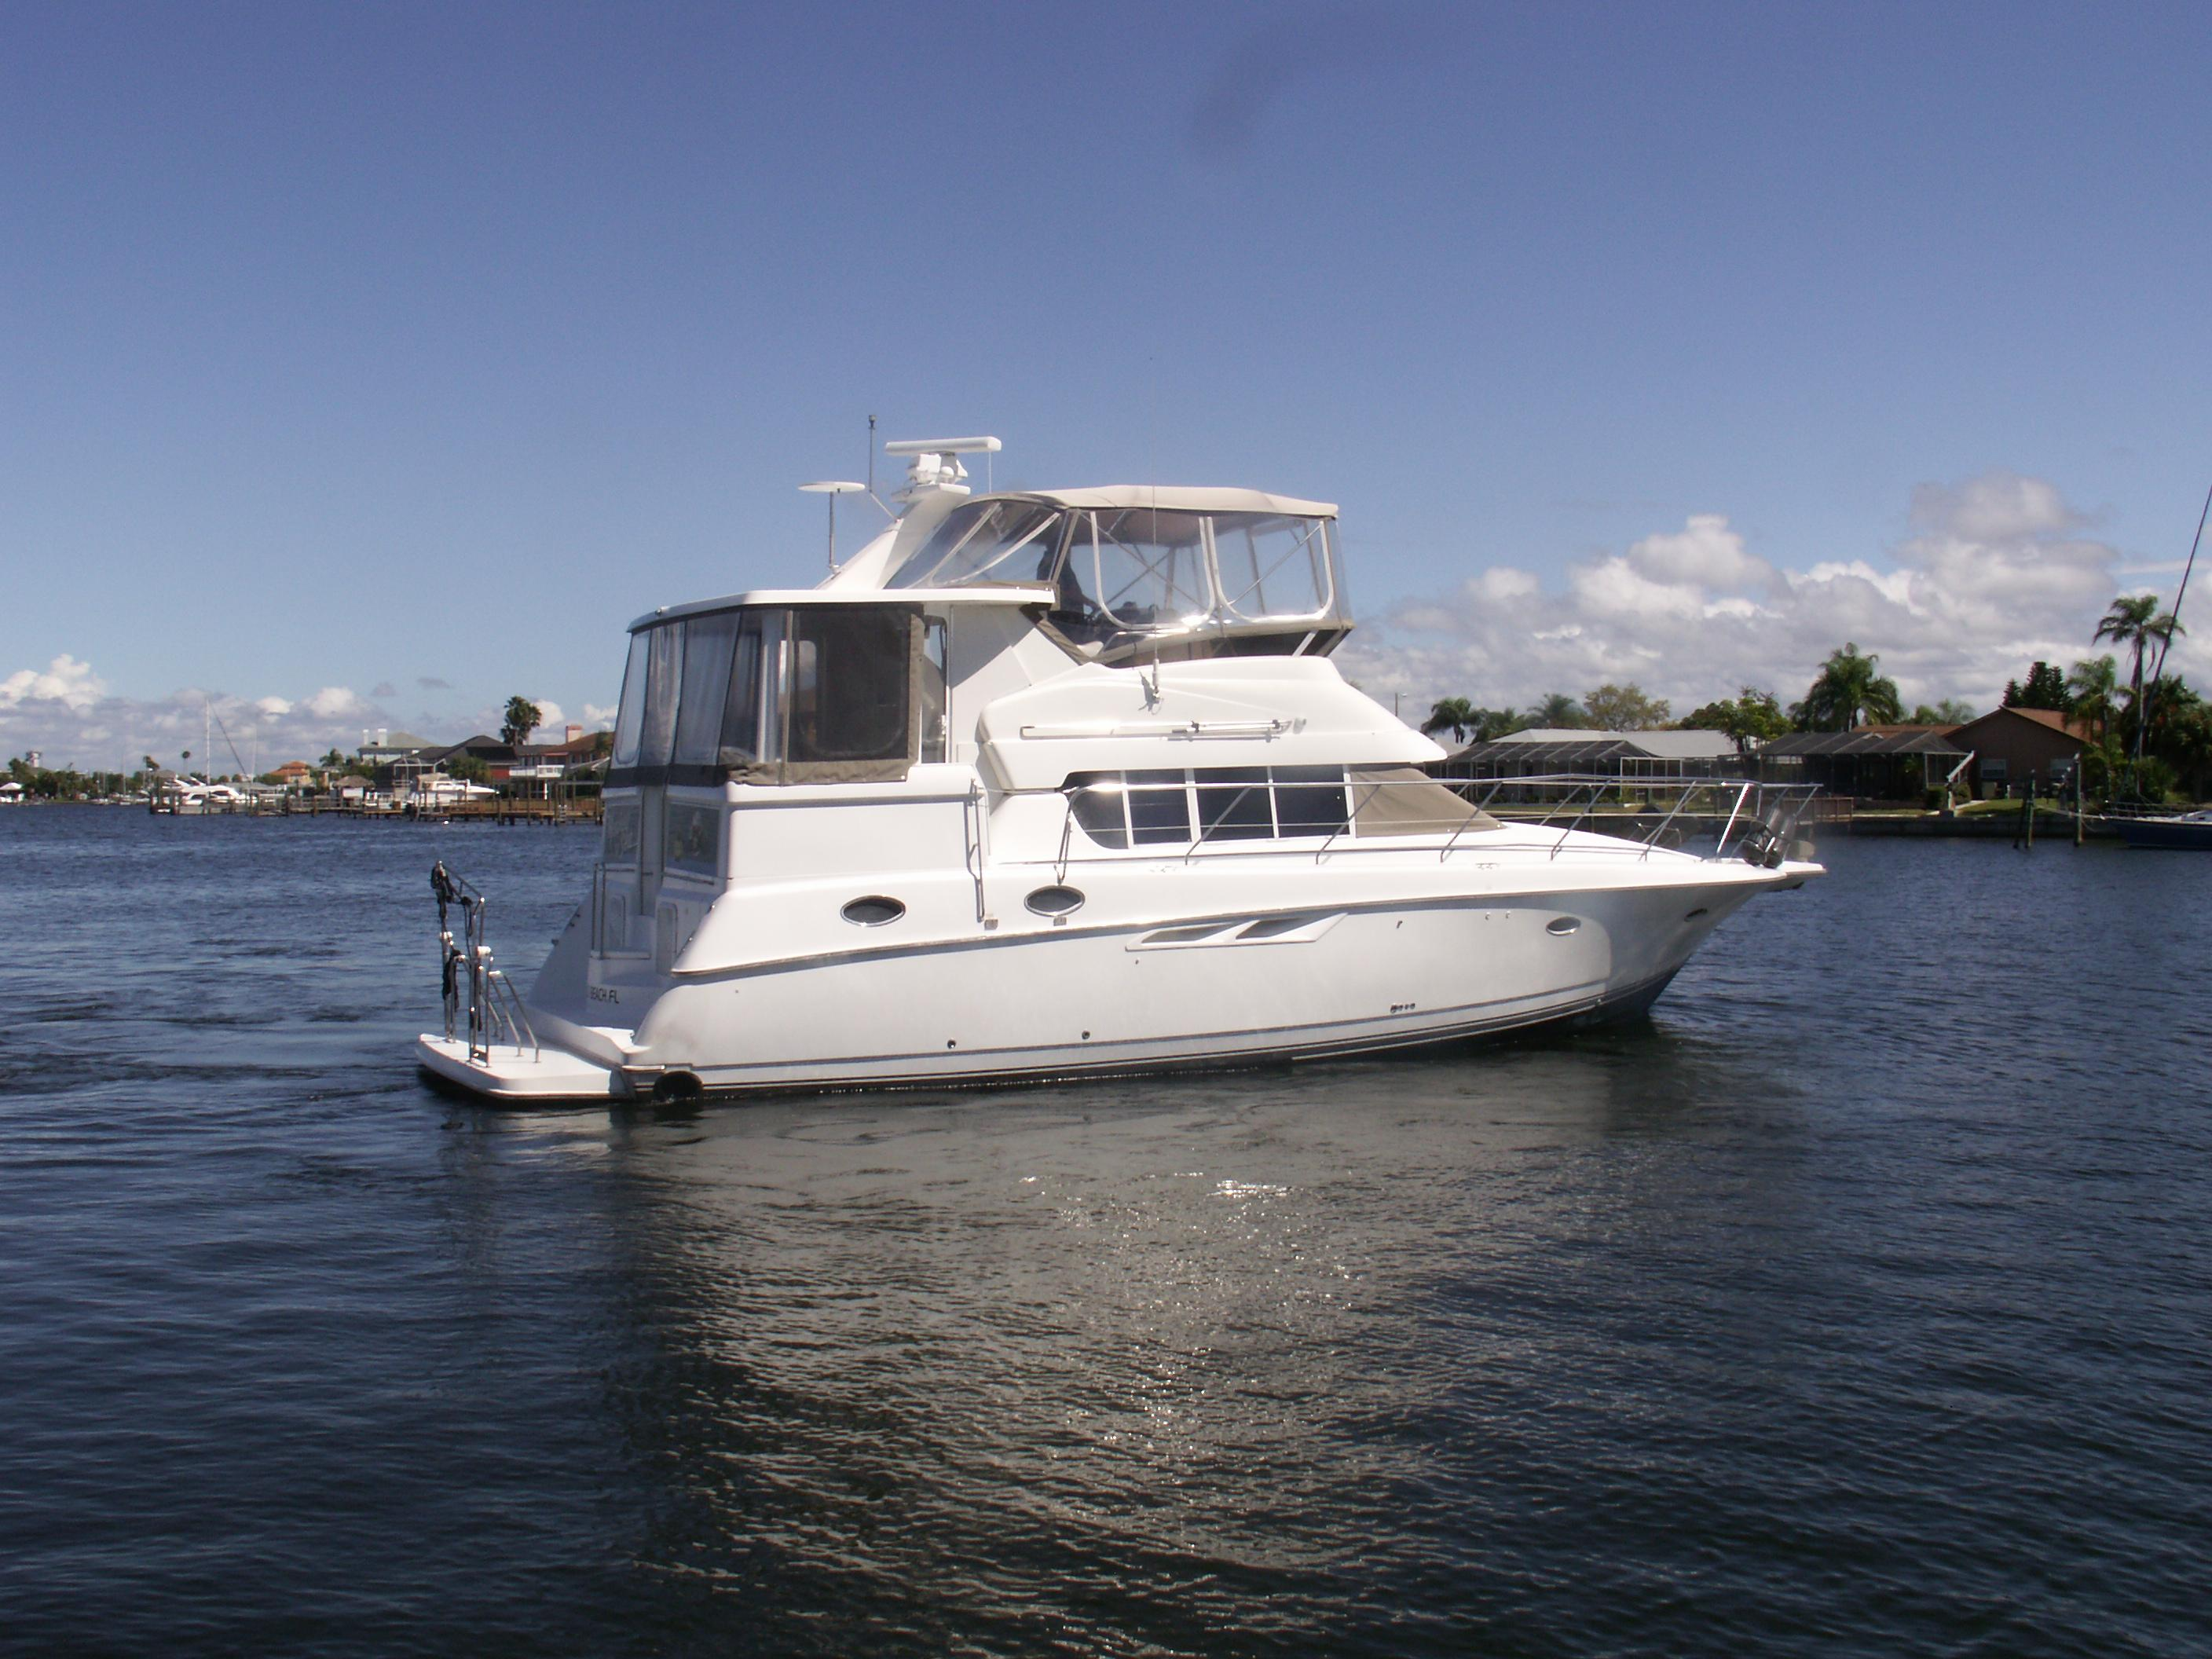 Used silverton yachts for sale mls boat search results for Used motor yacht for sale